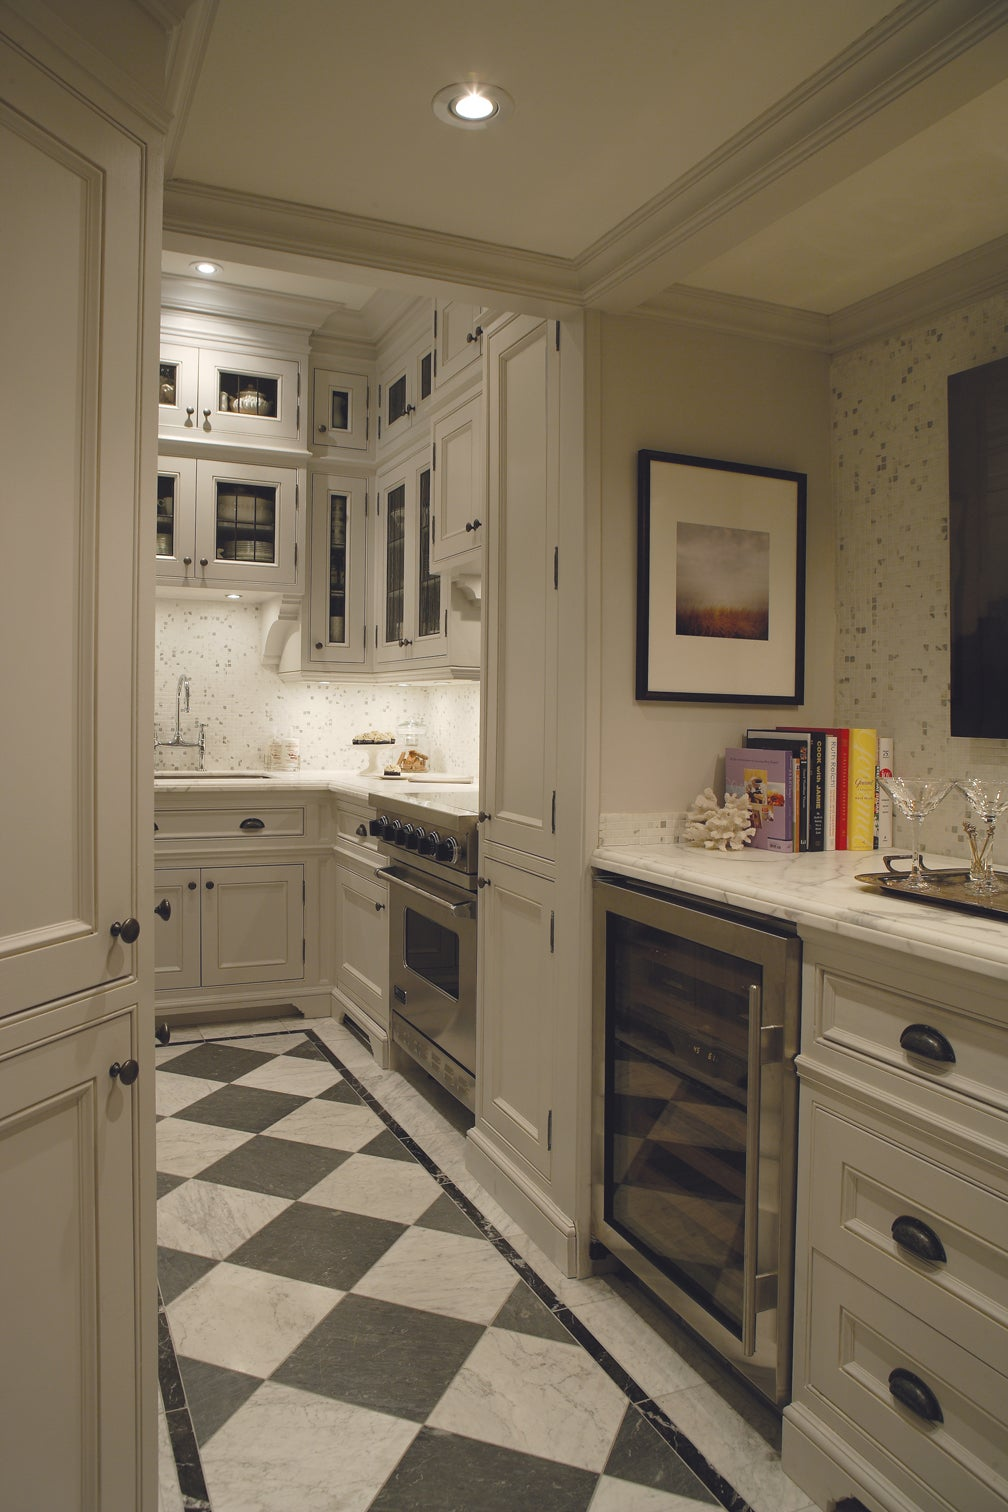 Kitchen by Philip Mitchell Design LLC on 1stdibs